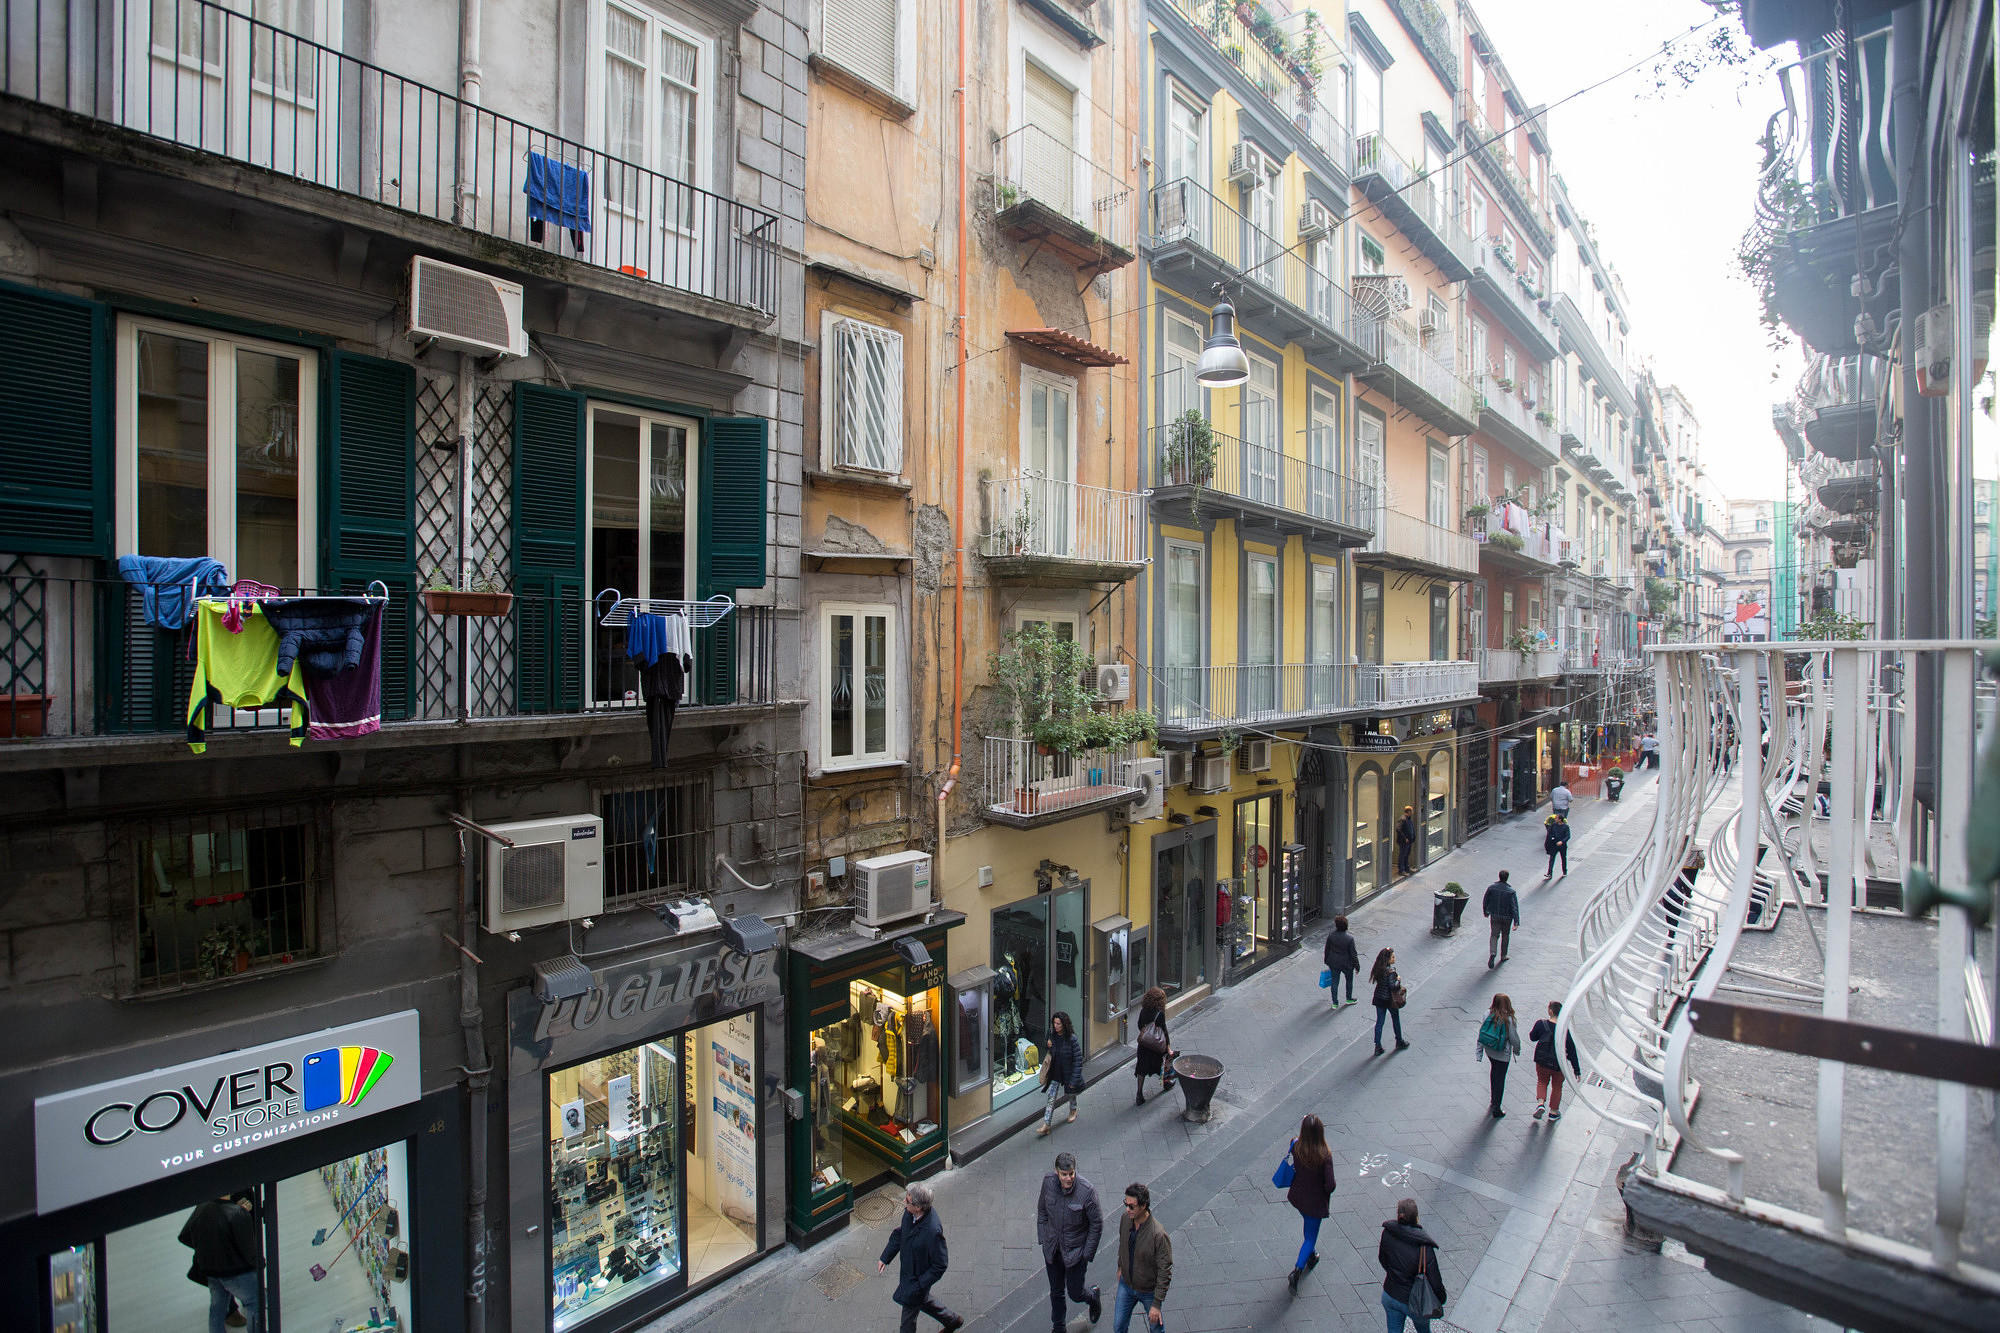 Narrow pedestrian streets lined with shops and restaurants in Naples' historic city center.